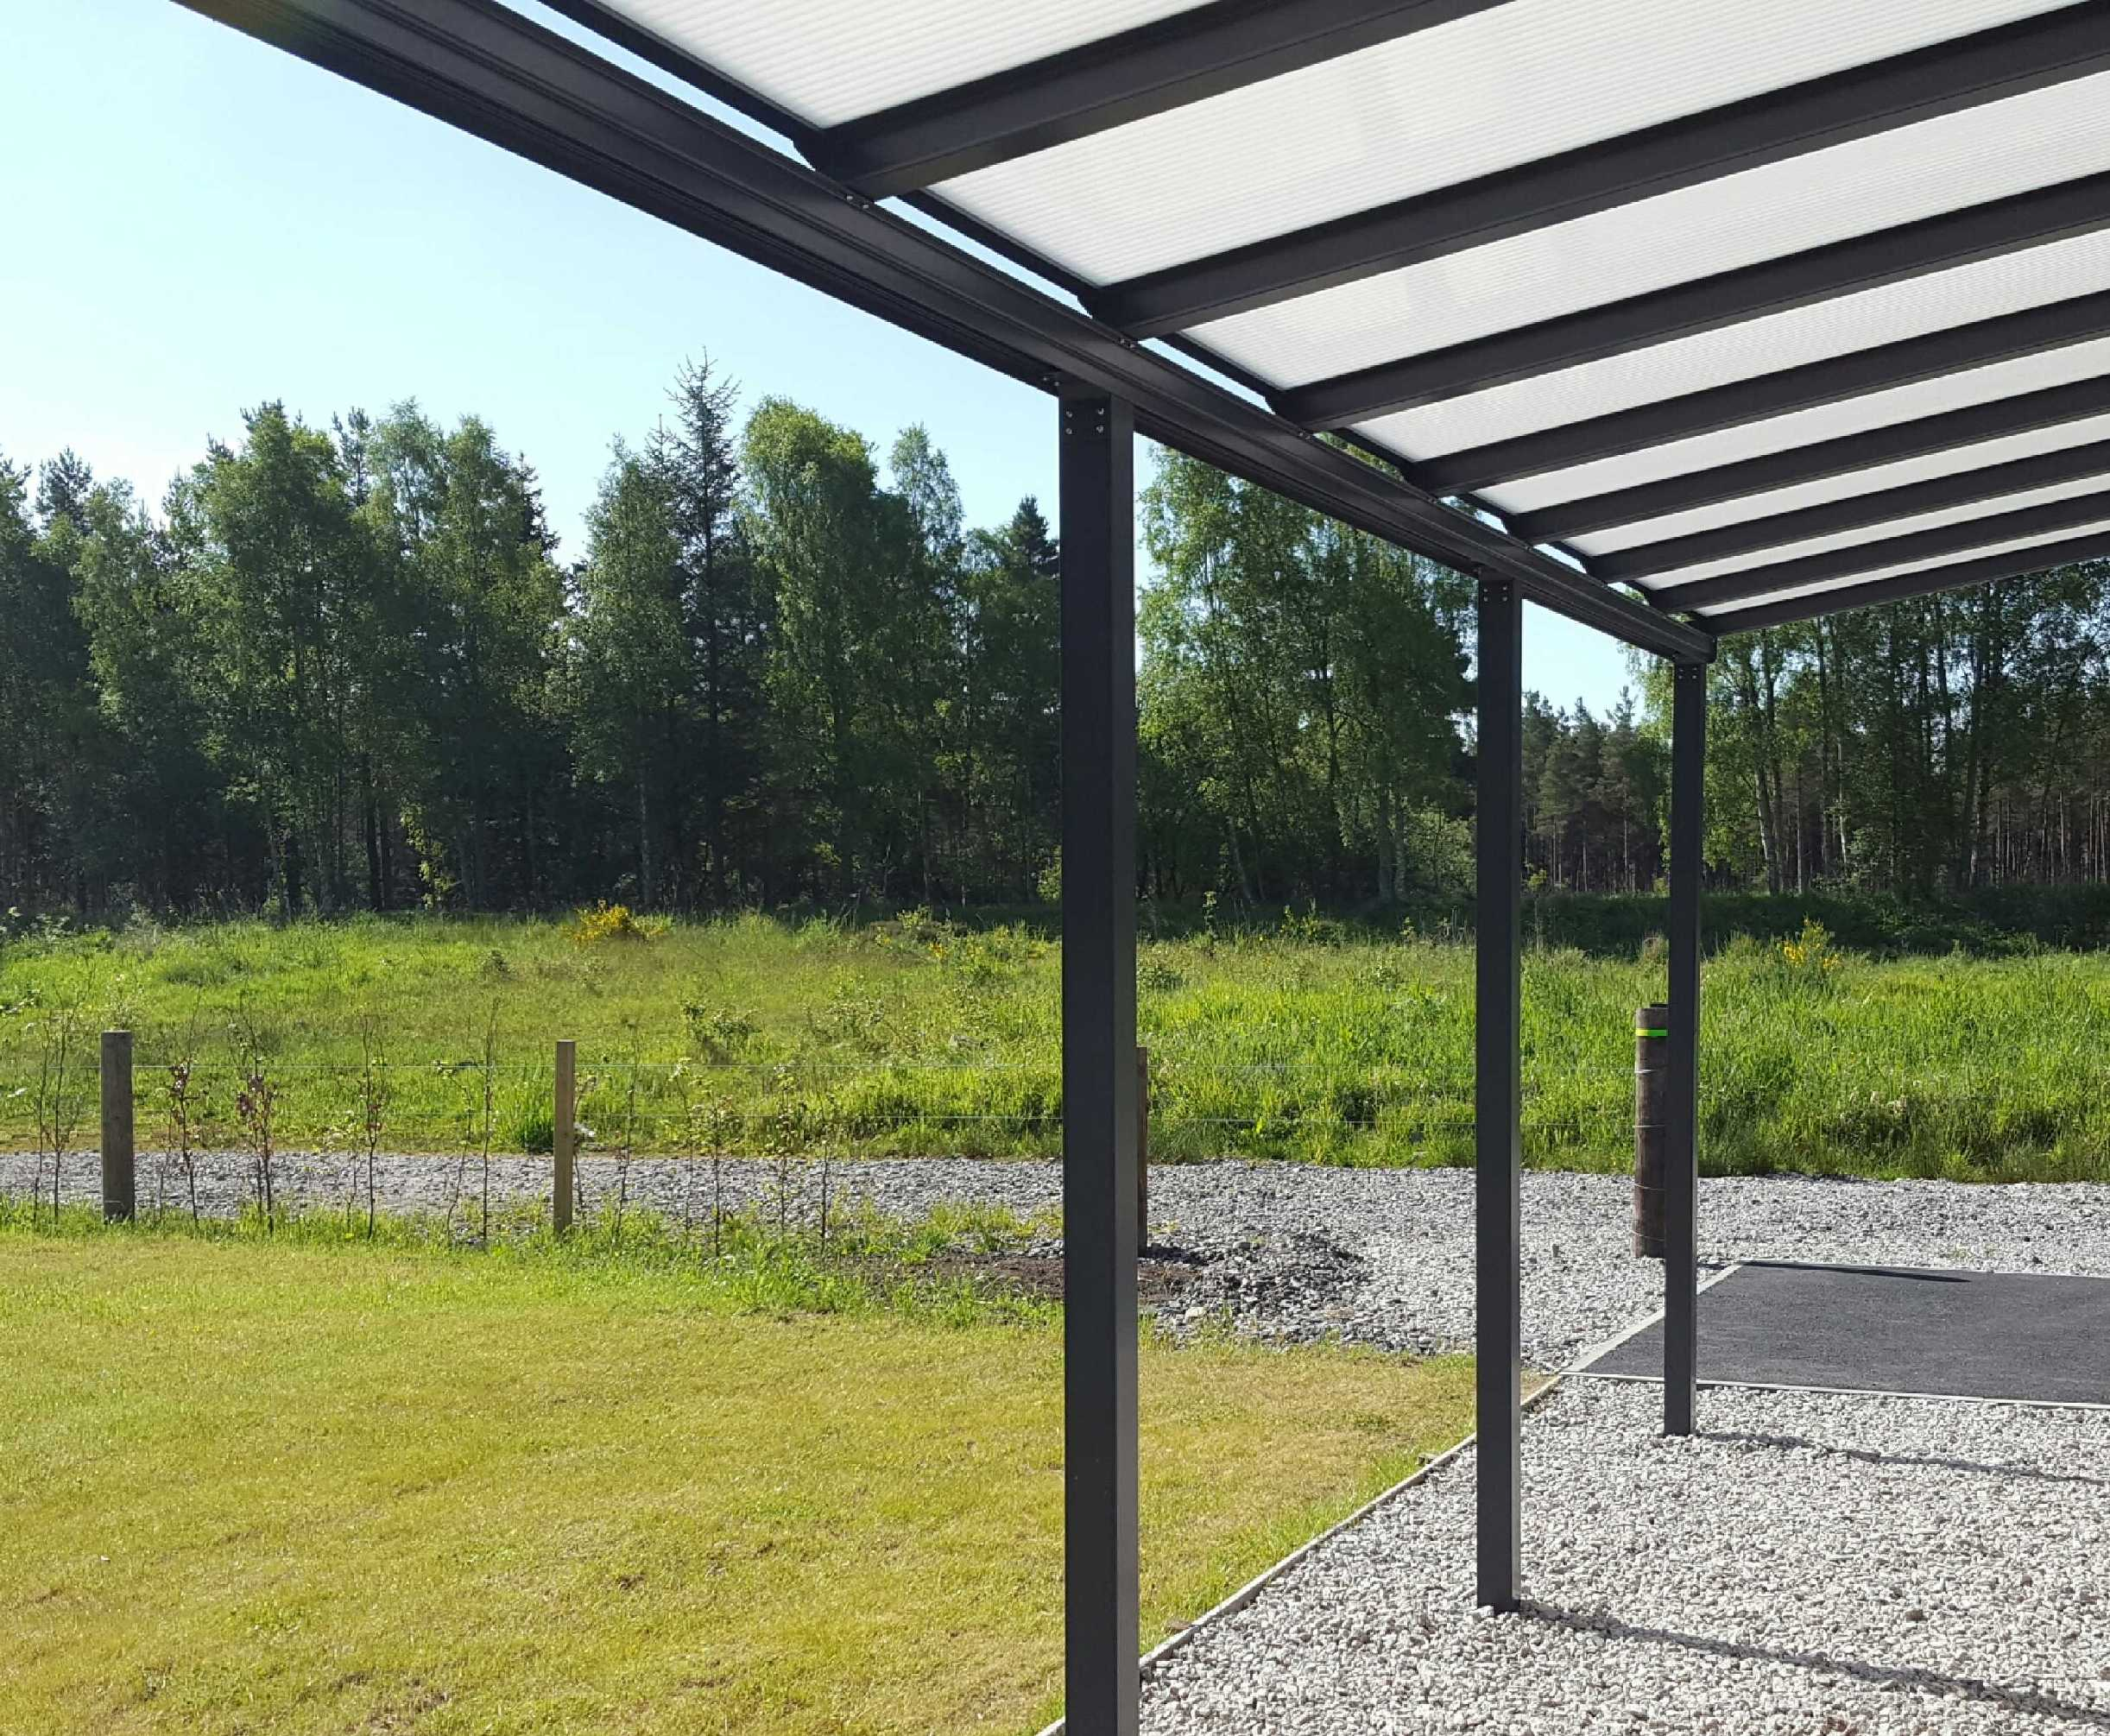 Omega Smart Lean-To Canopy, Anthracite Grey, UNGLAZED for 6mm Glazing - 2.1m (W) x 2.0m (P), (2) Supporting Posts